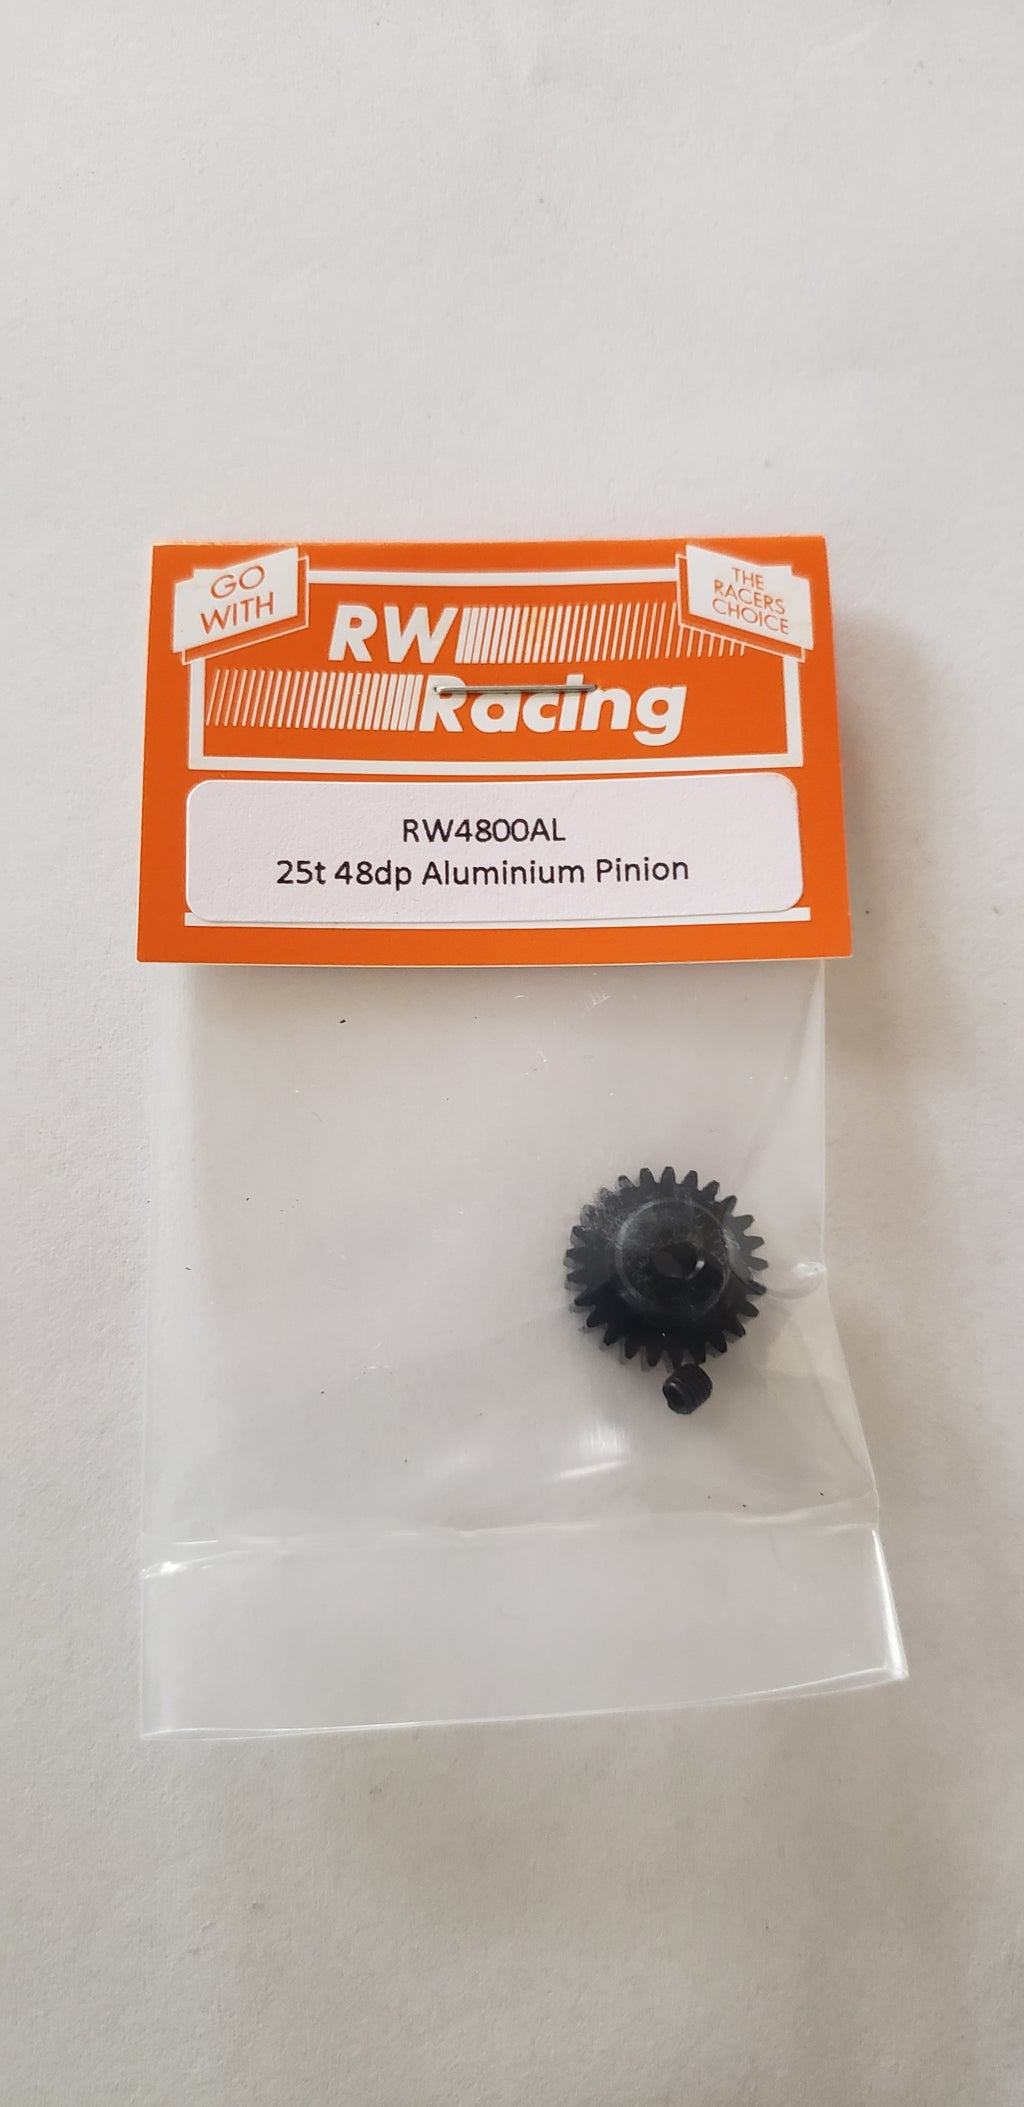 RW Racing Pinion motor  25 tooth 48 pitch for RC Cars